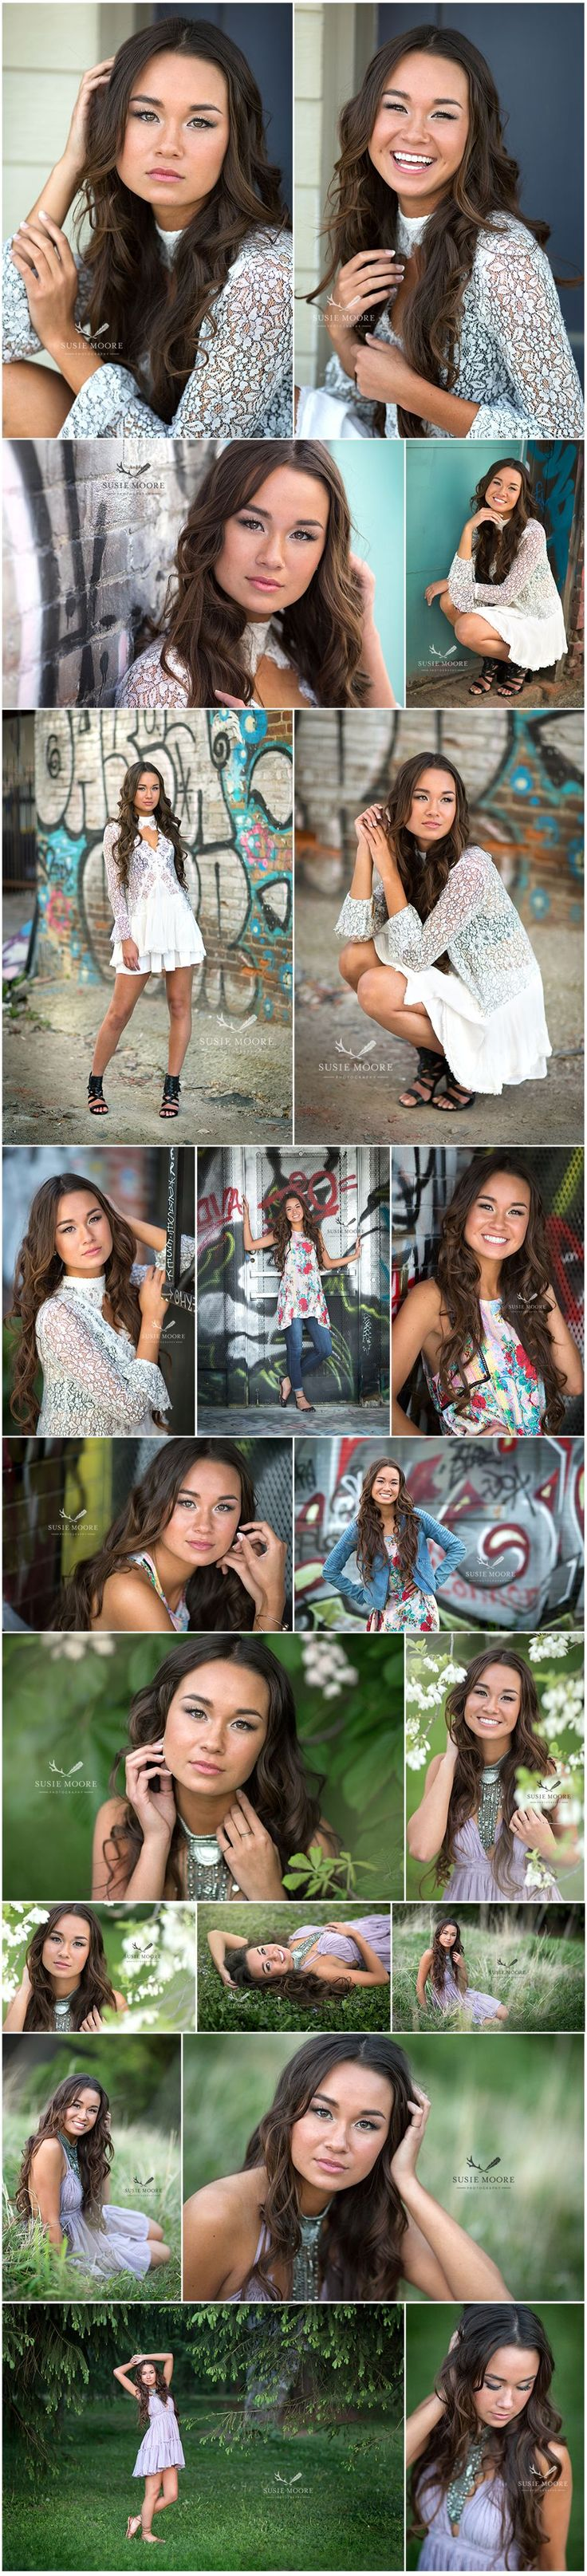 SENIOR PICTURES | SUSIE MOORE PHOTOGRAPHY | INDIANAPOLIS SENIOR PHOTOGRAPHY |